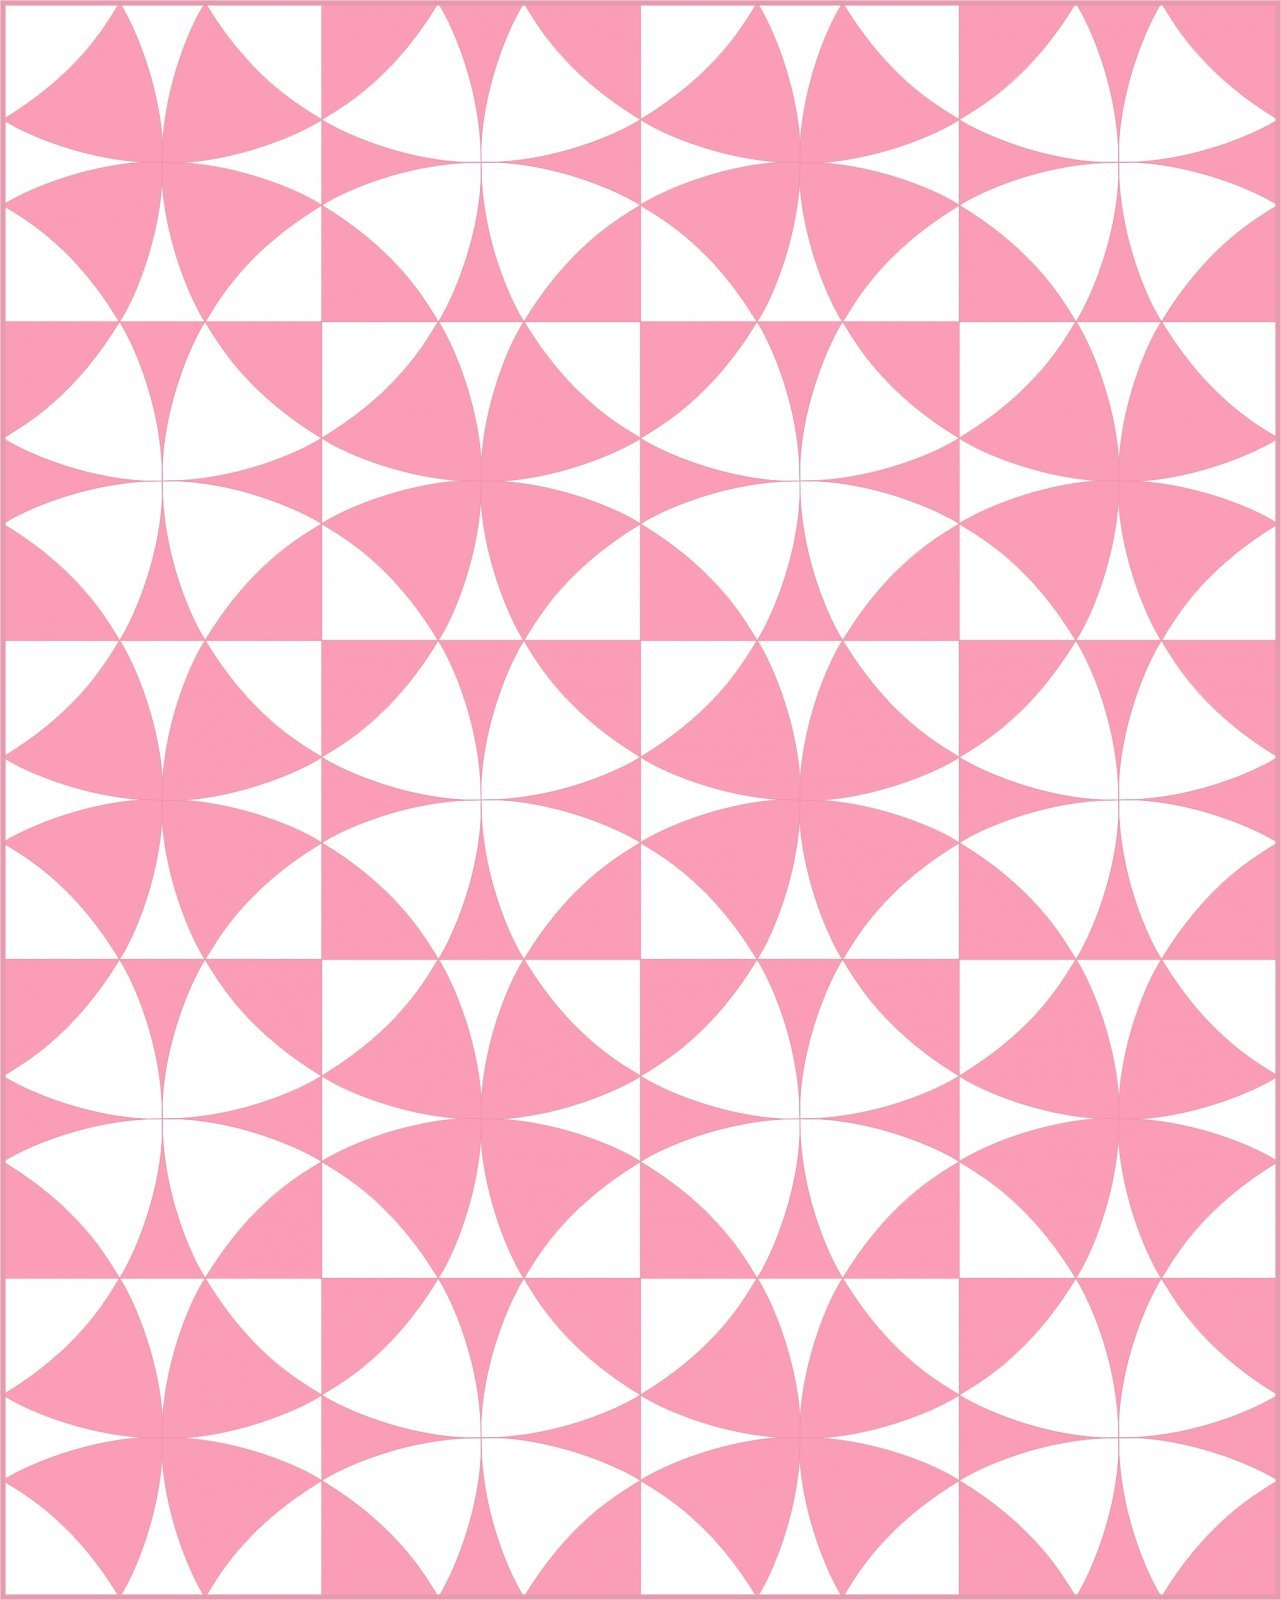 Wheel of Mystery 8 Pink and White Kit